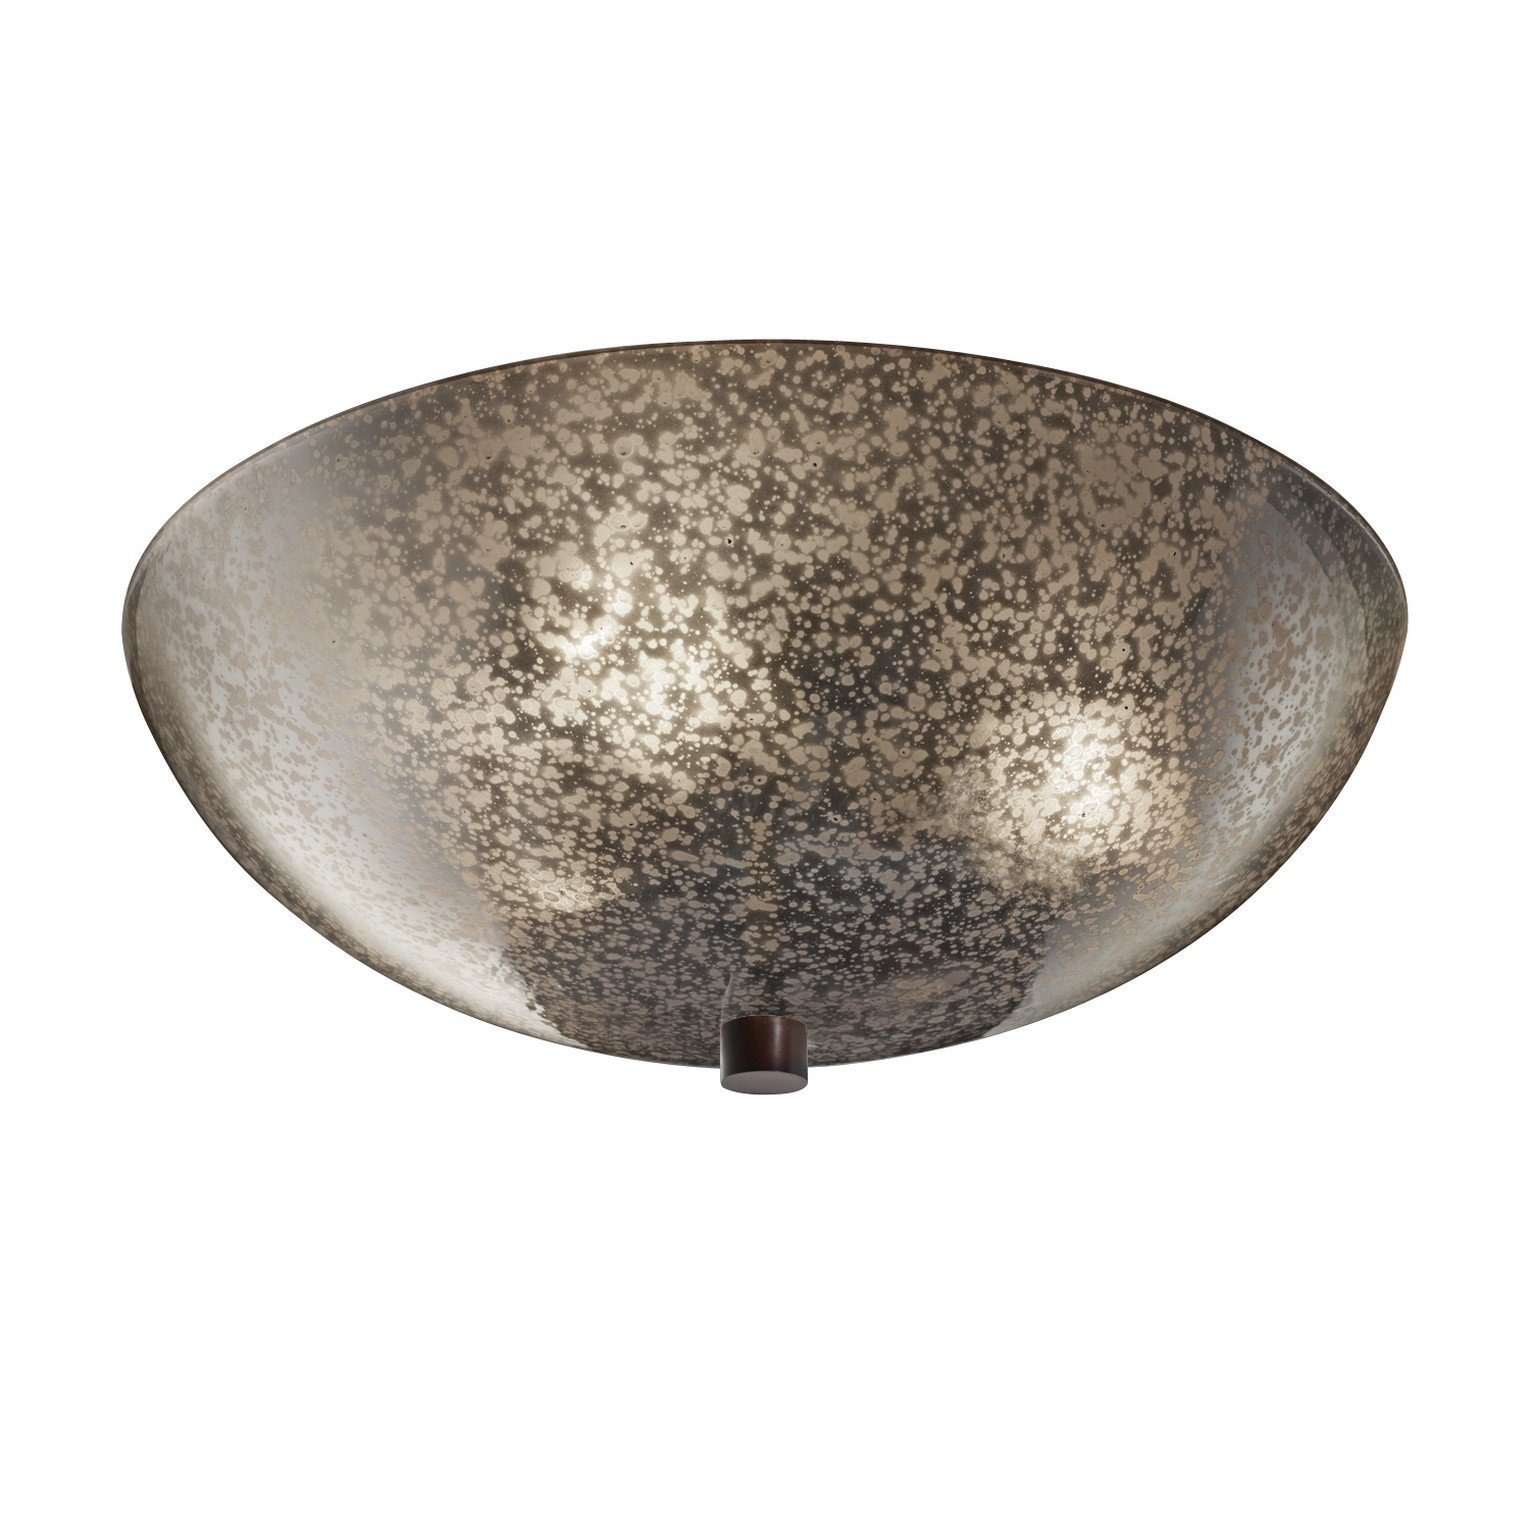 Justice Design Group Fusion 3-Light Fluorescent Semi-Flush - Dark Bronze Finish with Mercury Glass Artisan Glass Shade by Justice Design Group Lighting